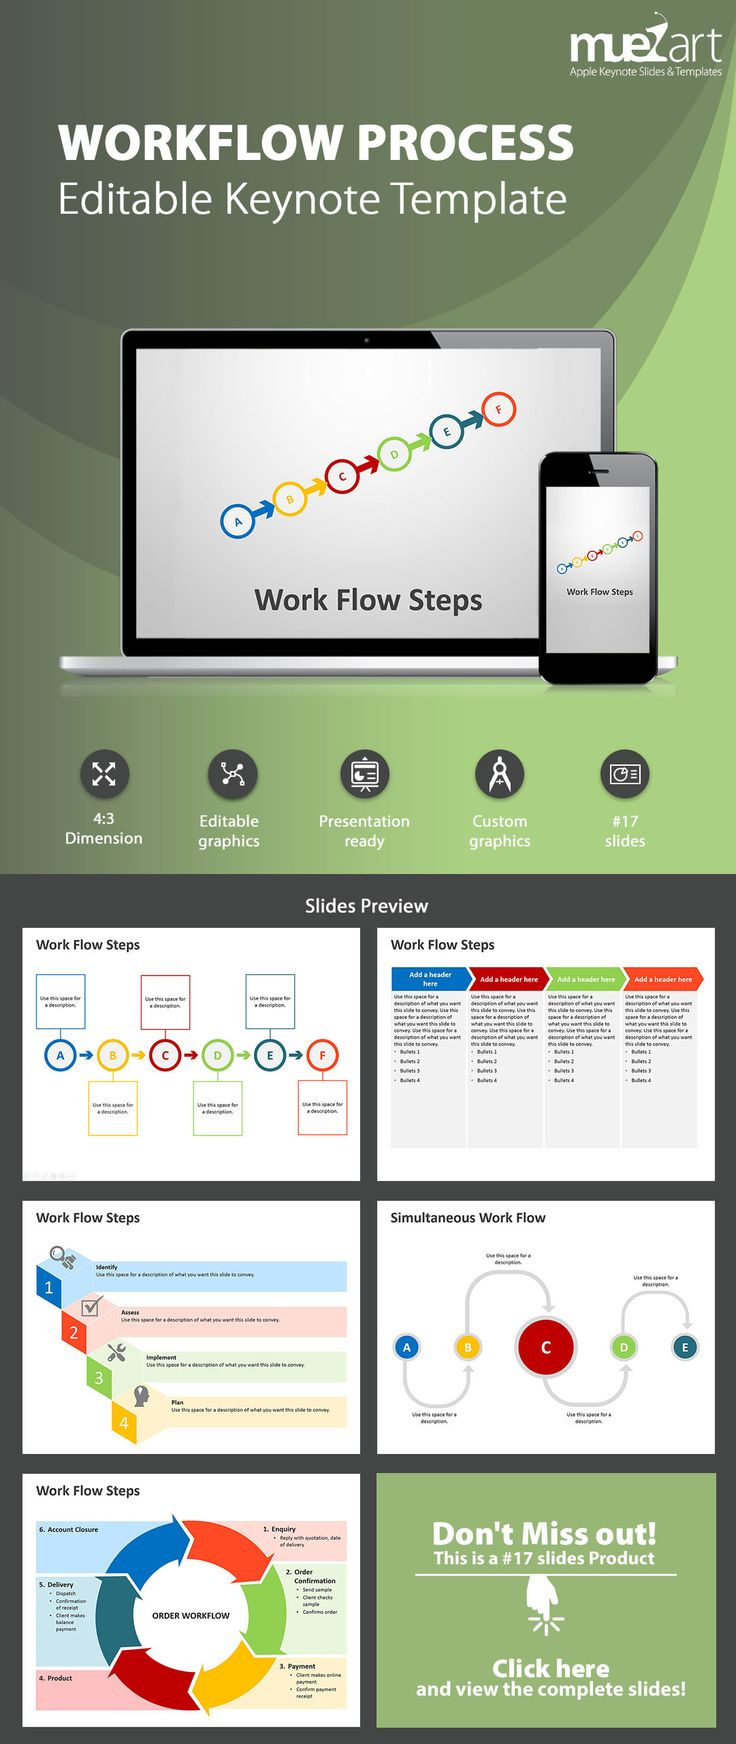 Workflow ProcessKeynote Template for iOS - A workflow diagram is a roadmap for implementation.This Workflow Process Steps keynote deck contains slides which can be used to show an ordinary step process, simultaneous work flow, order processing, marketing and sales, logistics or managerial work flow. Visit our store today!